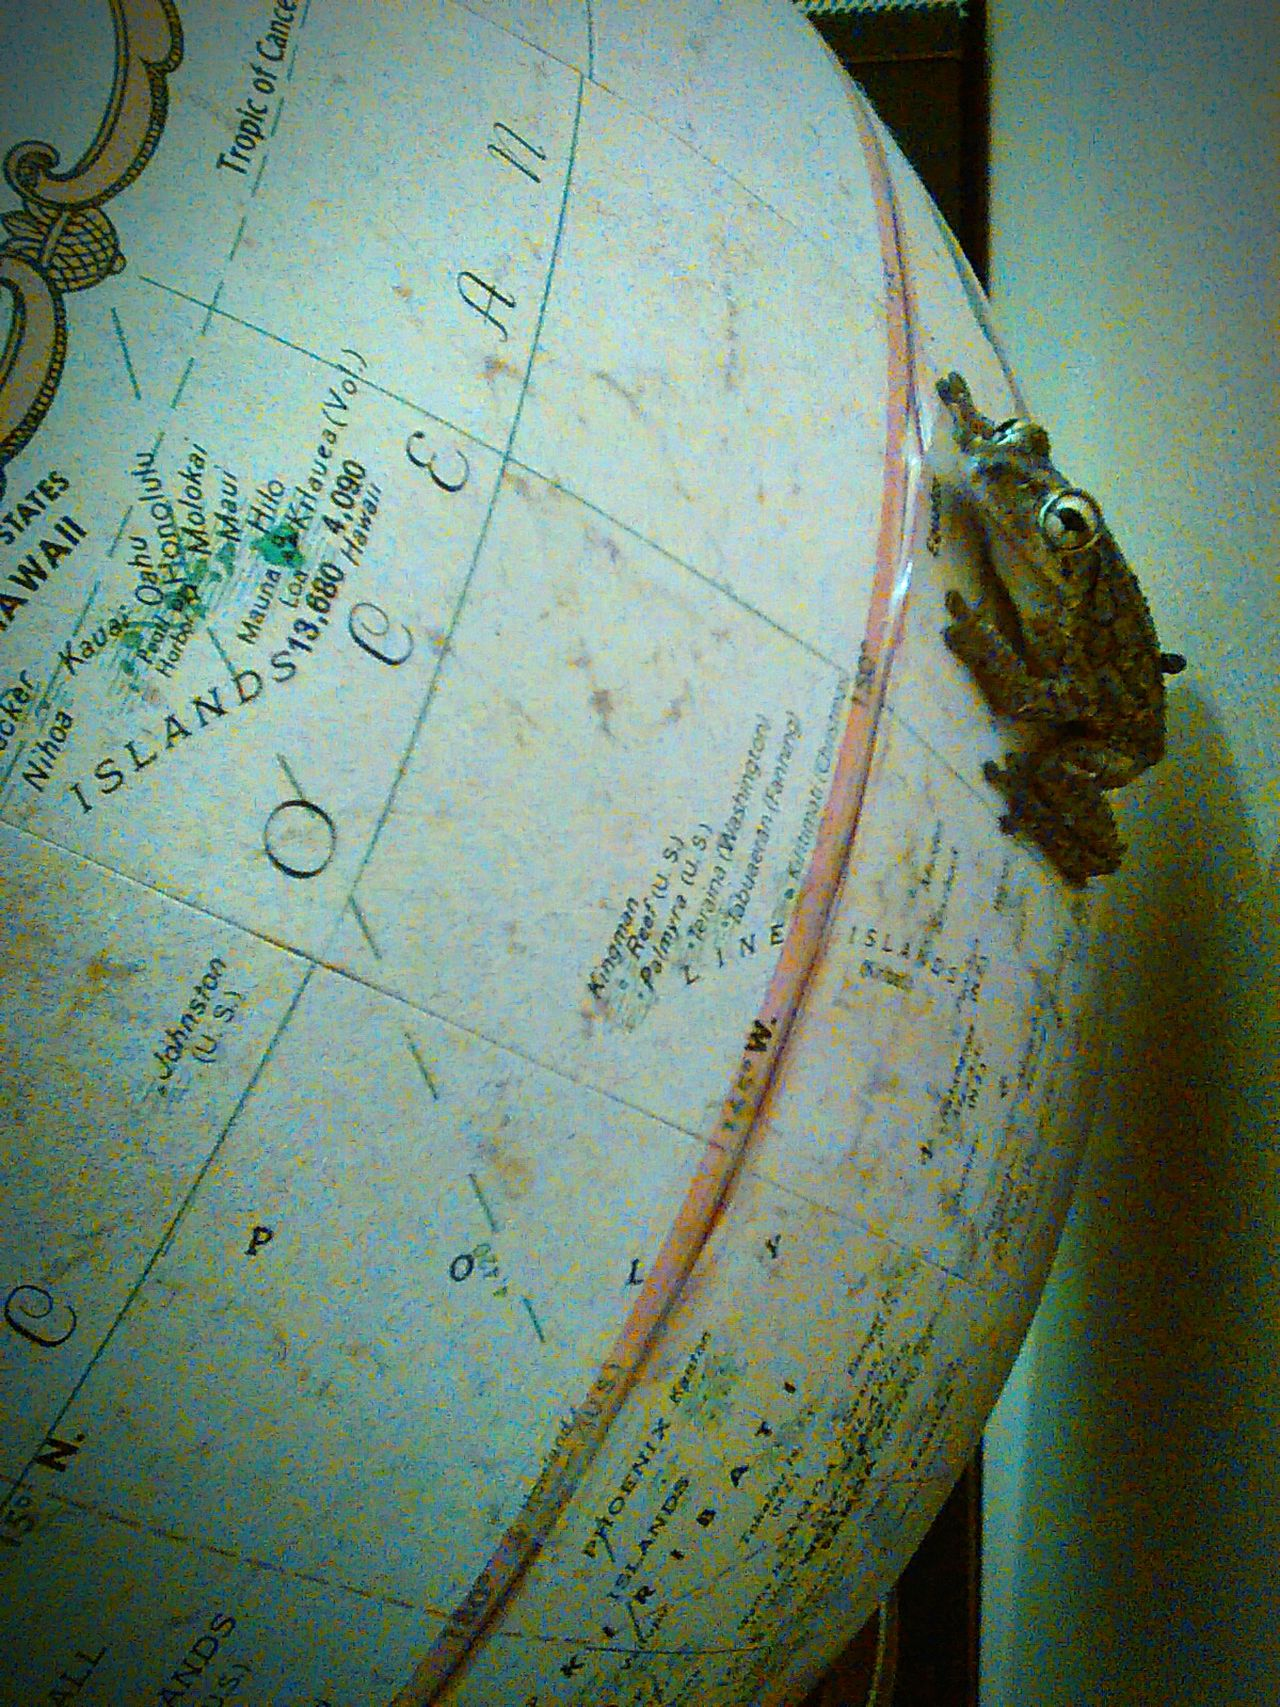 Frog heading toward the ocean Taking Over The World Seeing The World Differently Frog On Top Of The World Globetrotter Save The World Close-up Ice Age Seeing The World Check This Out Animal Themes World Traveller World Frog Perspective Out Of This World Out Of The Ordinary King Of The World Silly Outside Inside Outsider FUNNY ANIMALS Reptile Reptile World Amphibian Globe